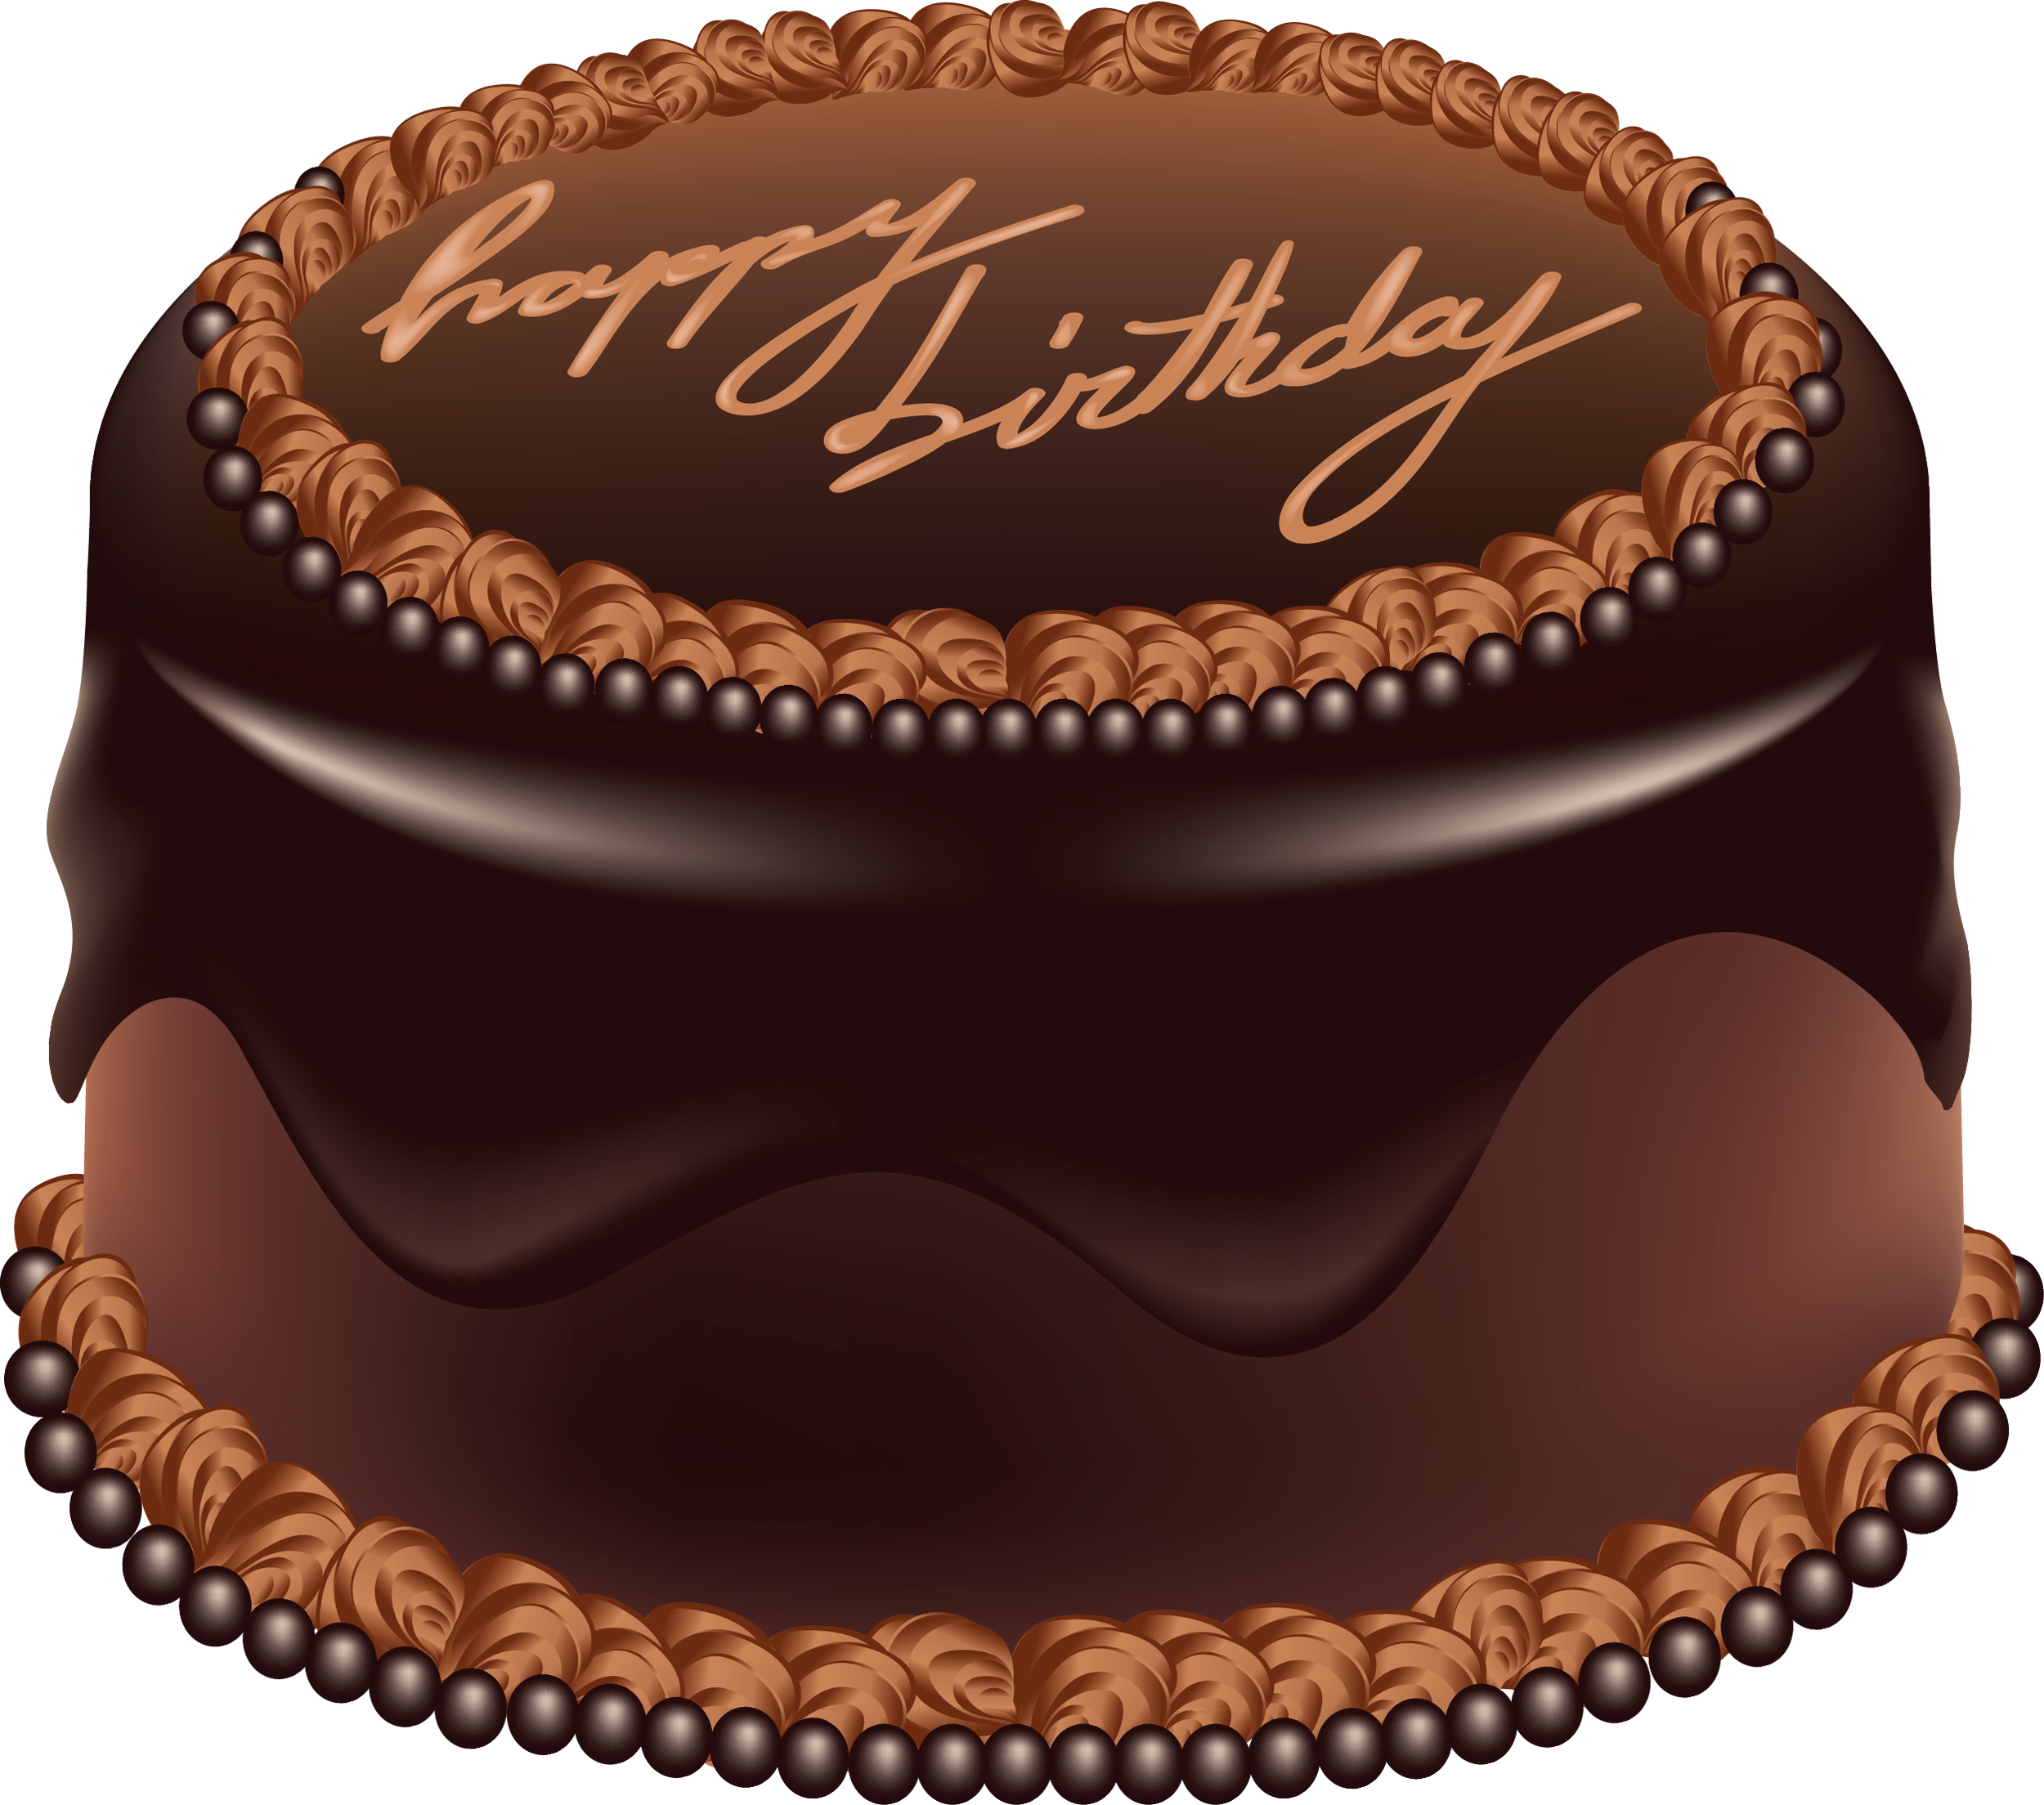 clip art royalty free download Chocolate transparent birthday. Cake happy art png